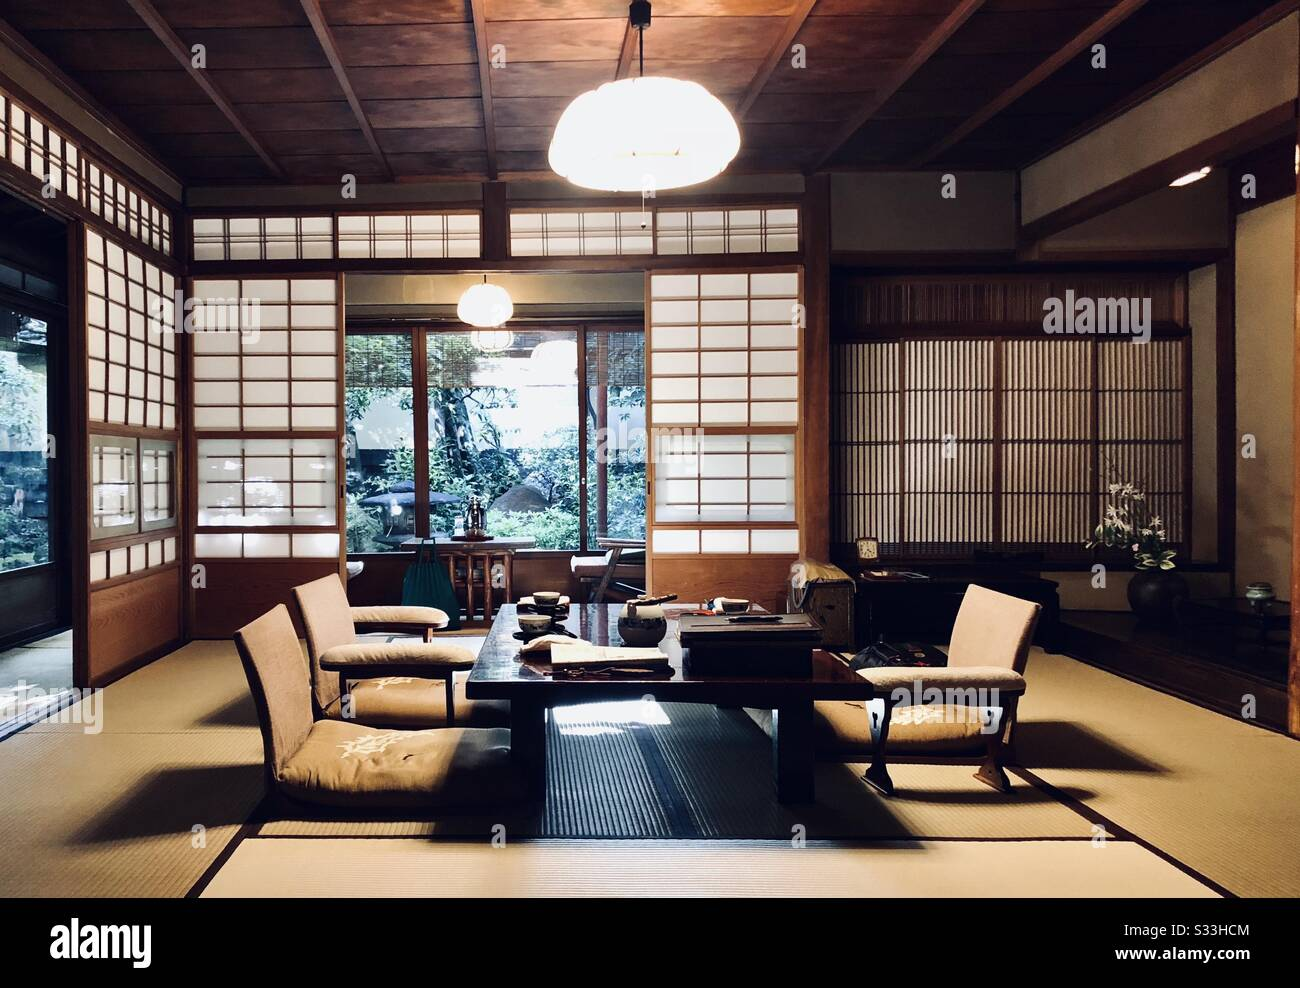 Japanese Style Room High Resolution Stock Photography And Images Alamy